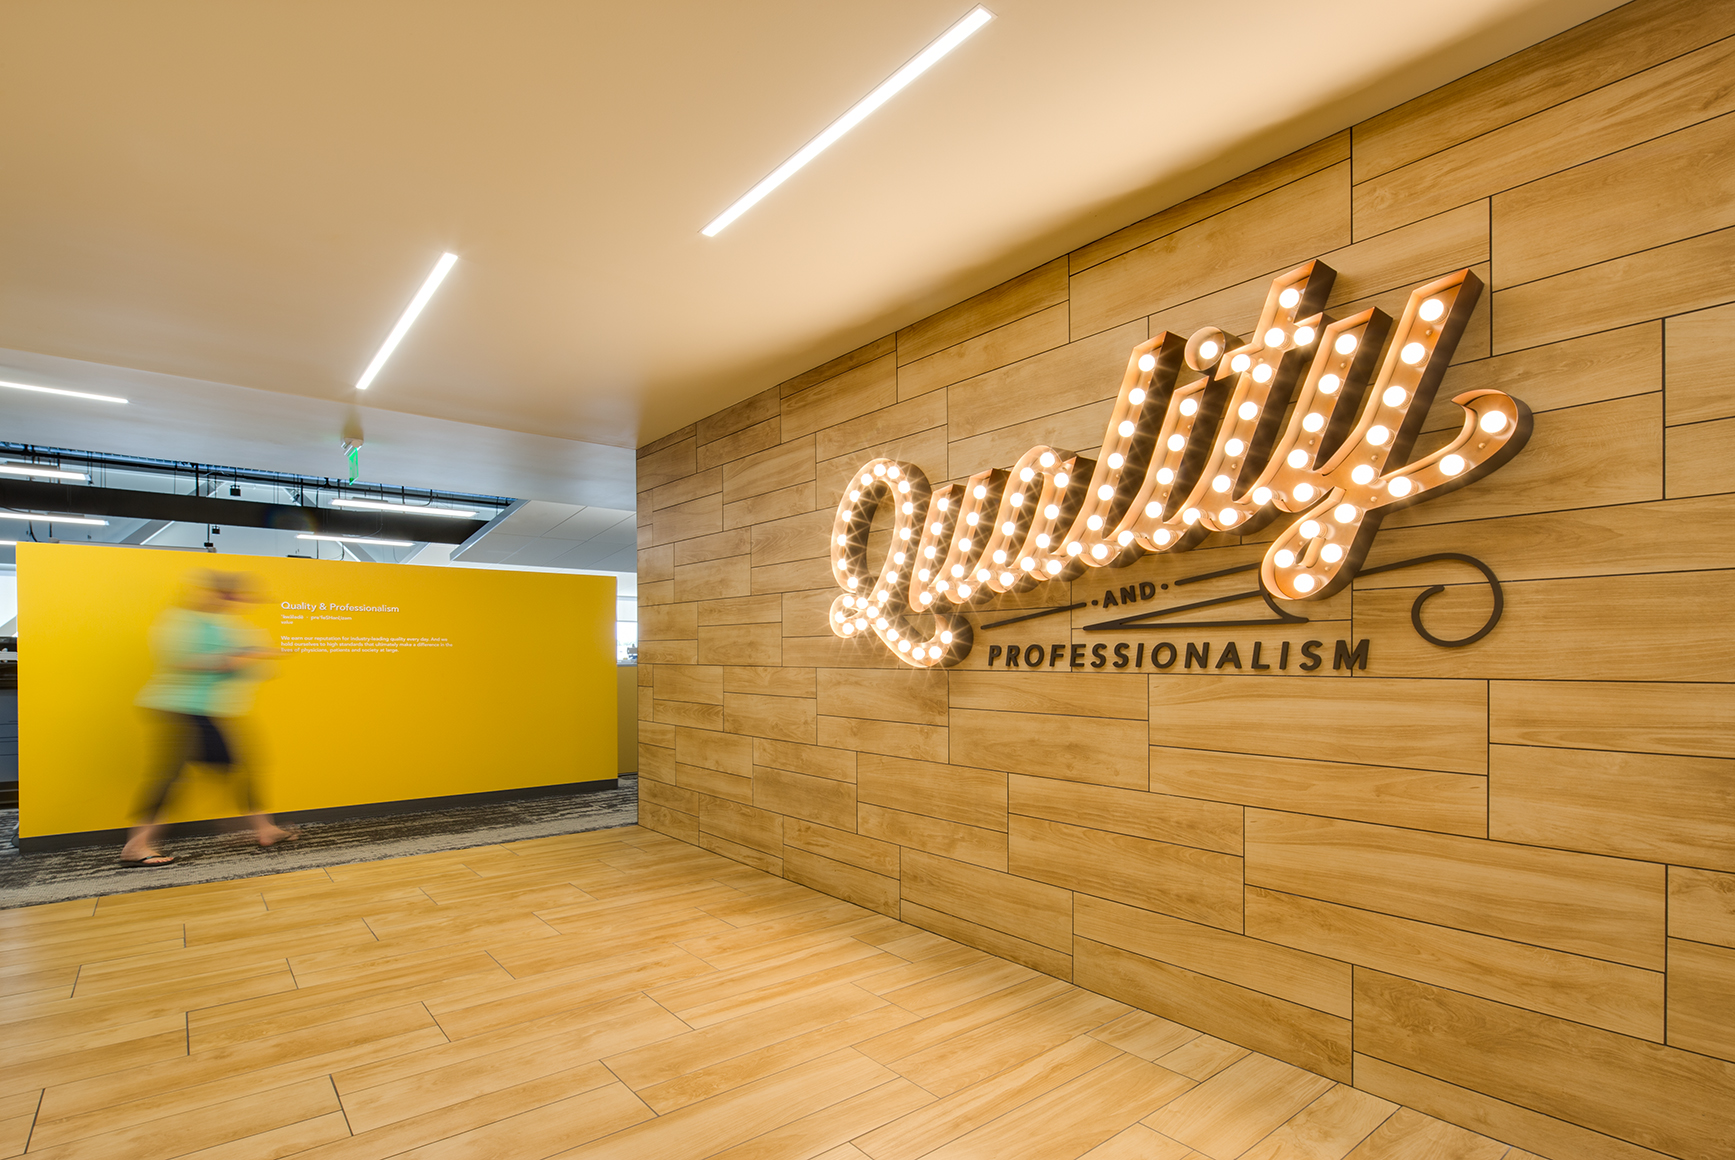 This interior architectural photograph shows a person walking in motion in corridor with yellow and wooden walls. On the wooden wall is a sign made of individual lightbulbs that reads {quote}Quality{quote}.